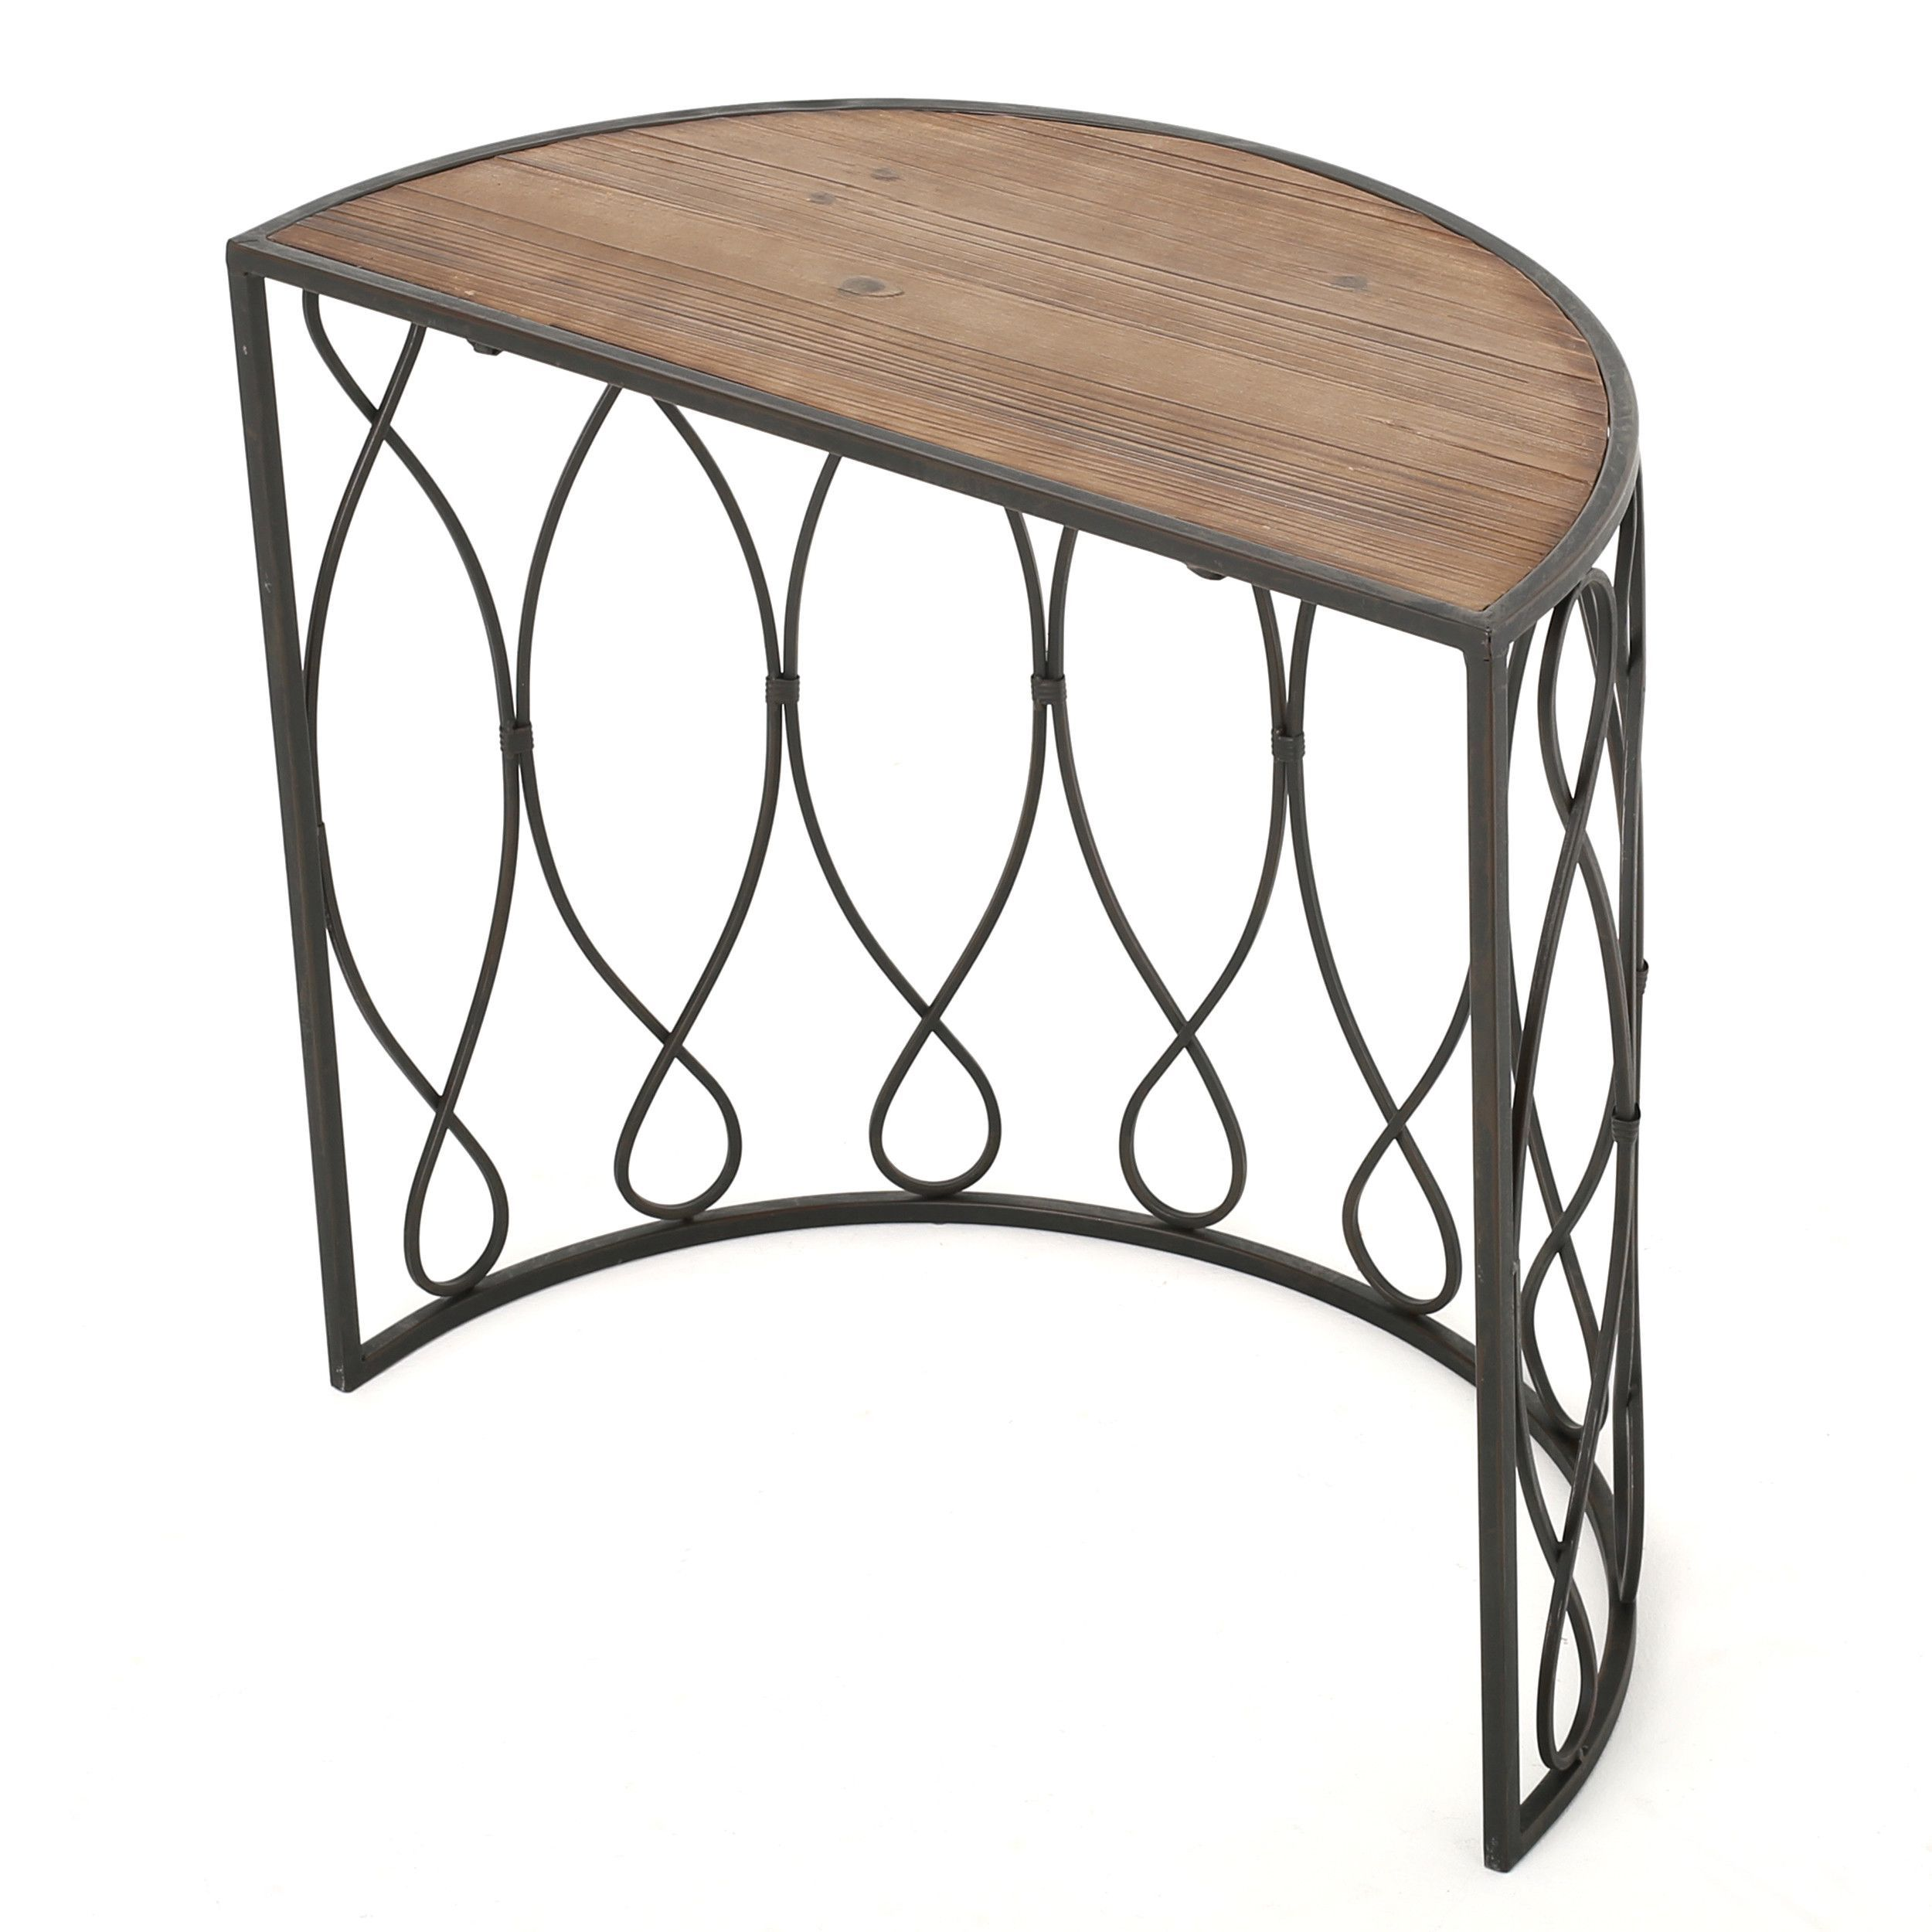 marbella small rustic accent table products tipton round all modern side bunnings outdoor lounge settings for bedroom drop leaf coffee furniture cushions cordless lamps pottery